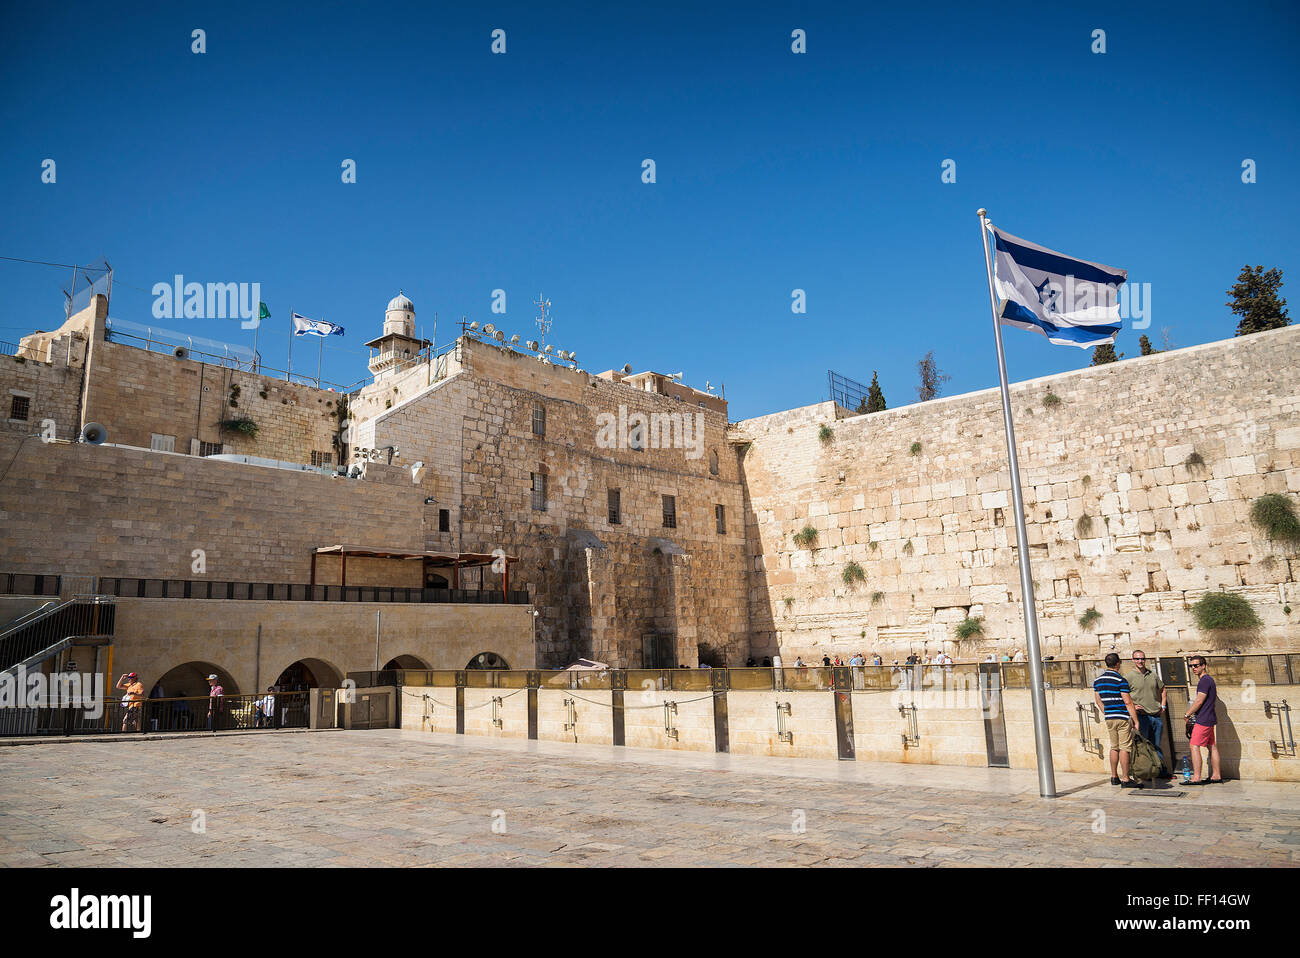 the western wall wailing wall landmark complex in jerusalem israel - Stock Image